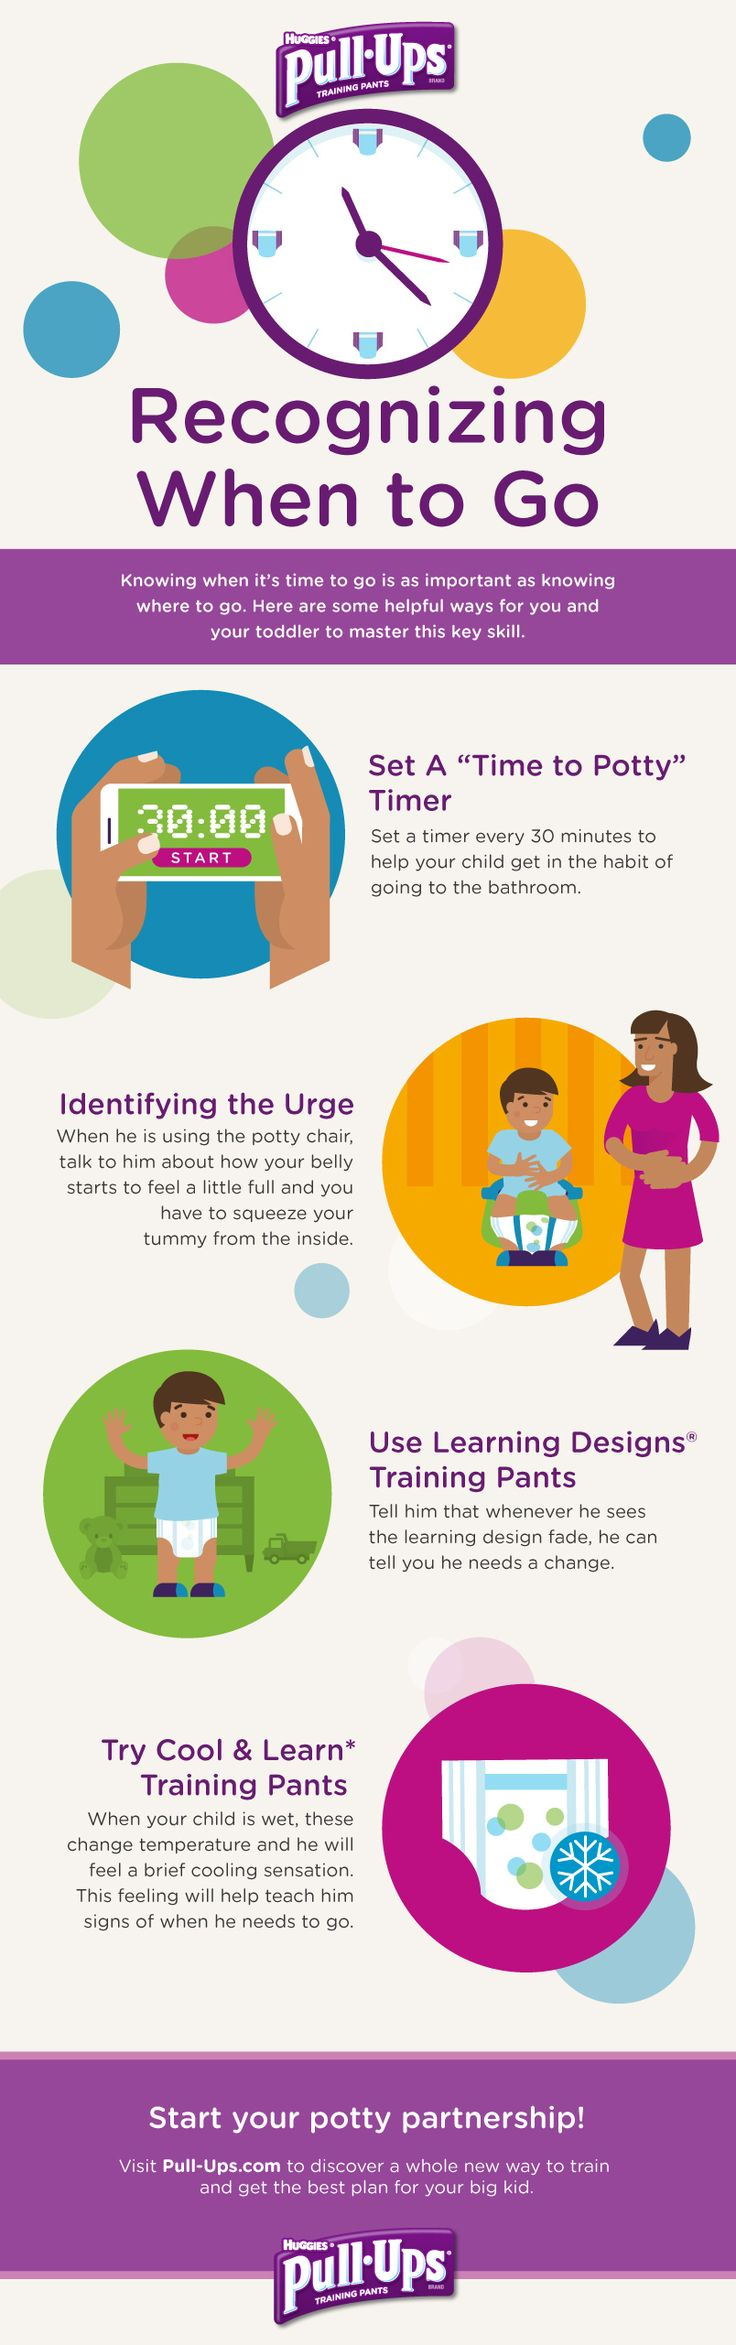 """Pull-Ups knowledge is potty power. """"Recognizing When to Go"""" helps your toddler know when the time is right. Repin and follow these helpful steps to master the skill of knowing when to get going. For other useful potty training tips, check out our other boards."""